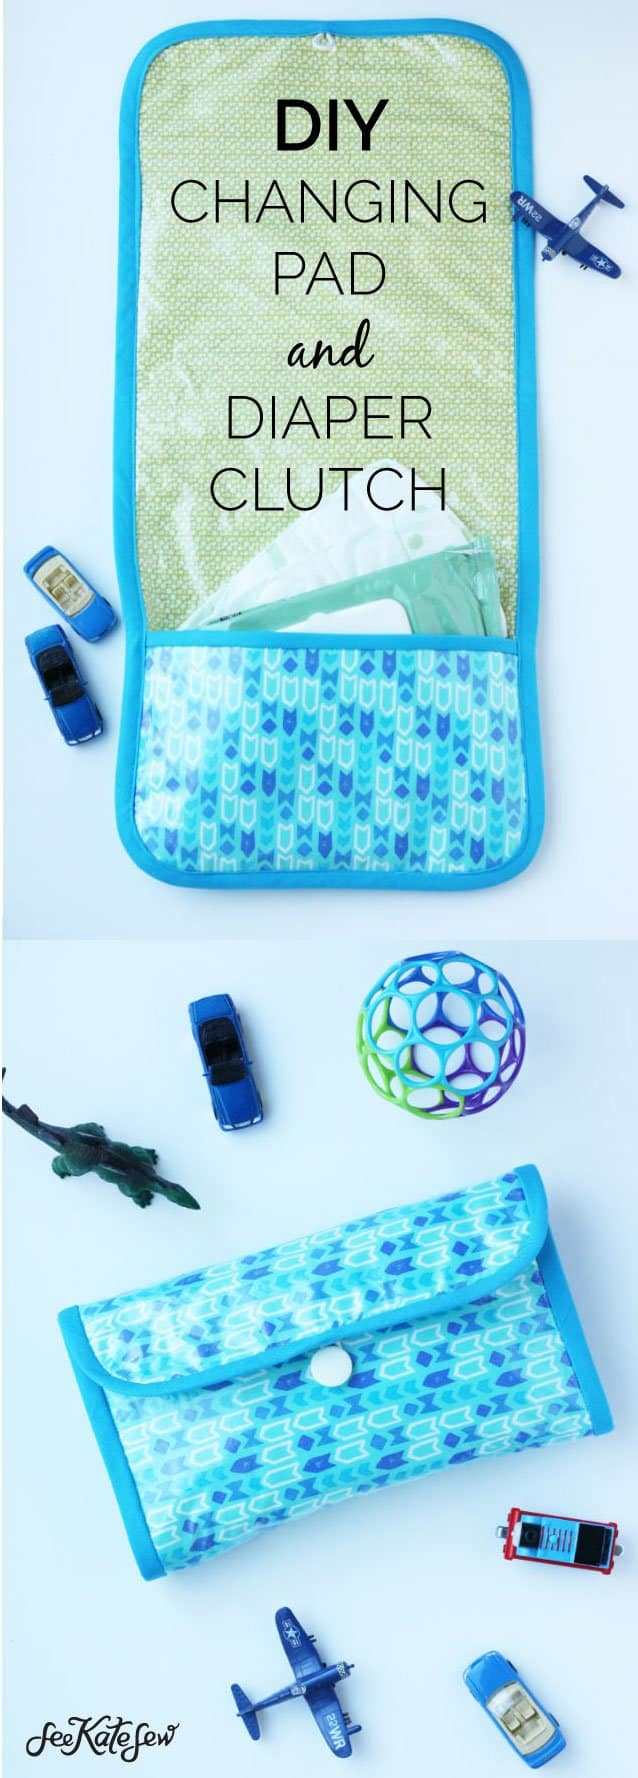 DIY Changing Pad and Diaper Clutch-See Kate Sew